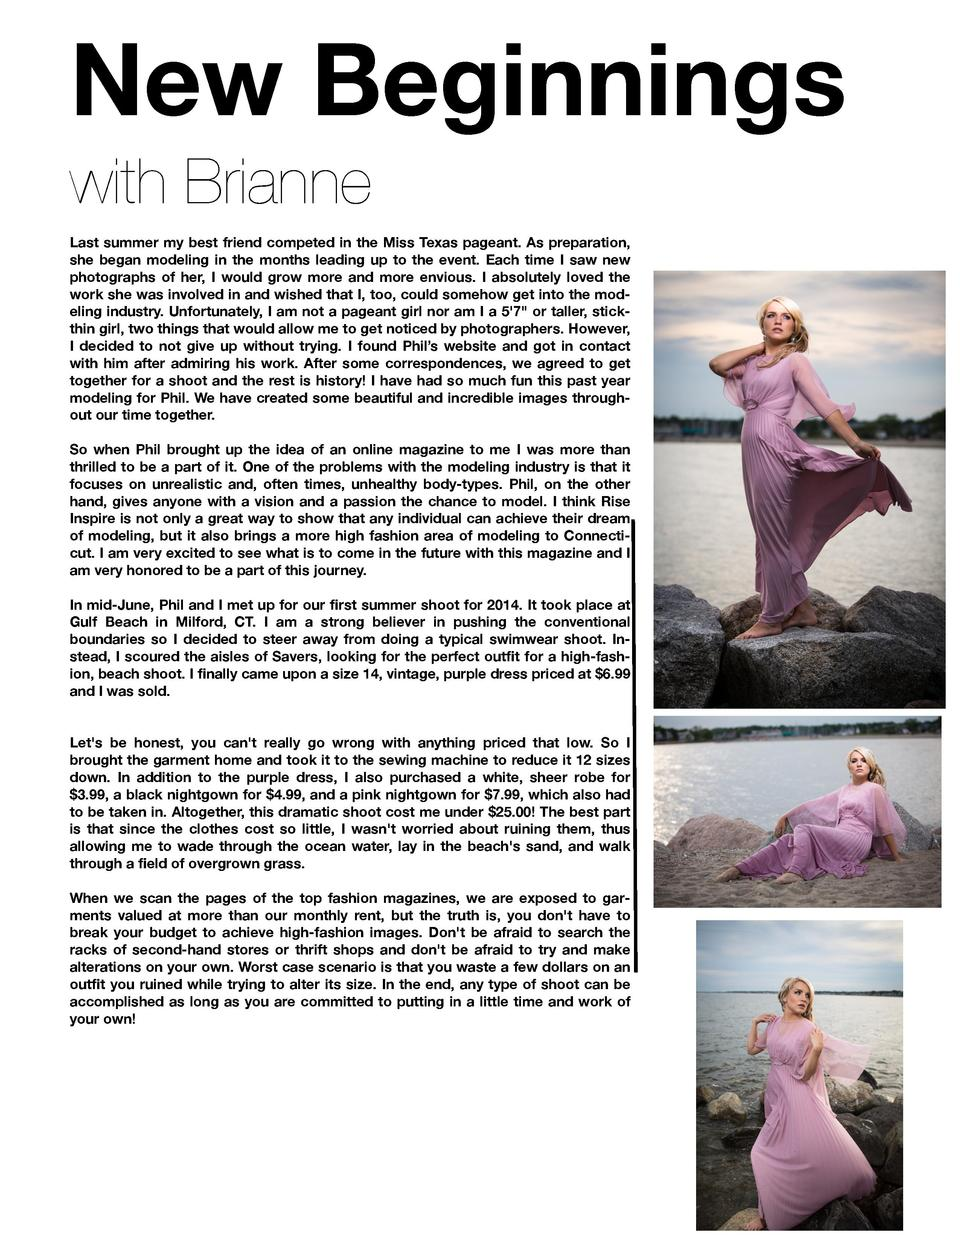 New Beginnings with Brianne Last summer my best friend competed in the Miss Texas pageant. As preparation, she began model...